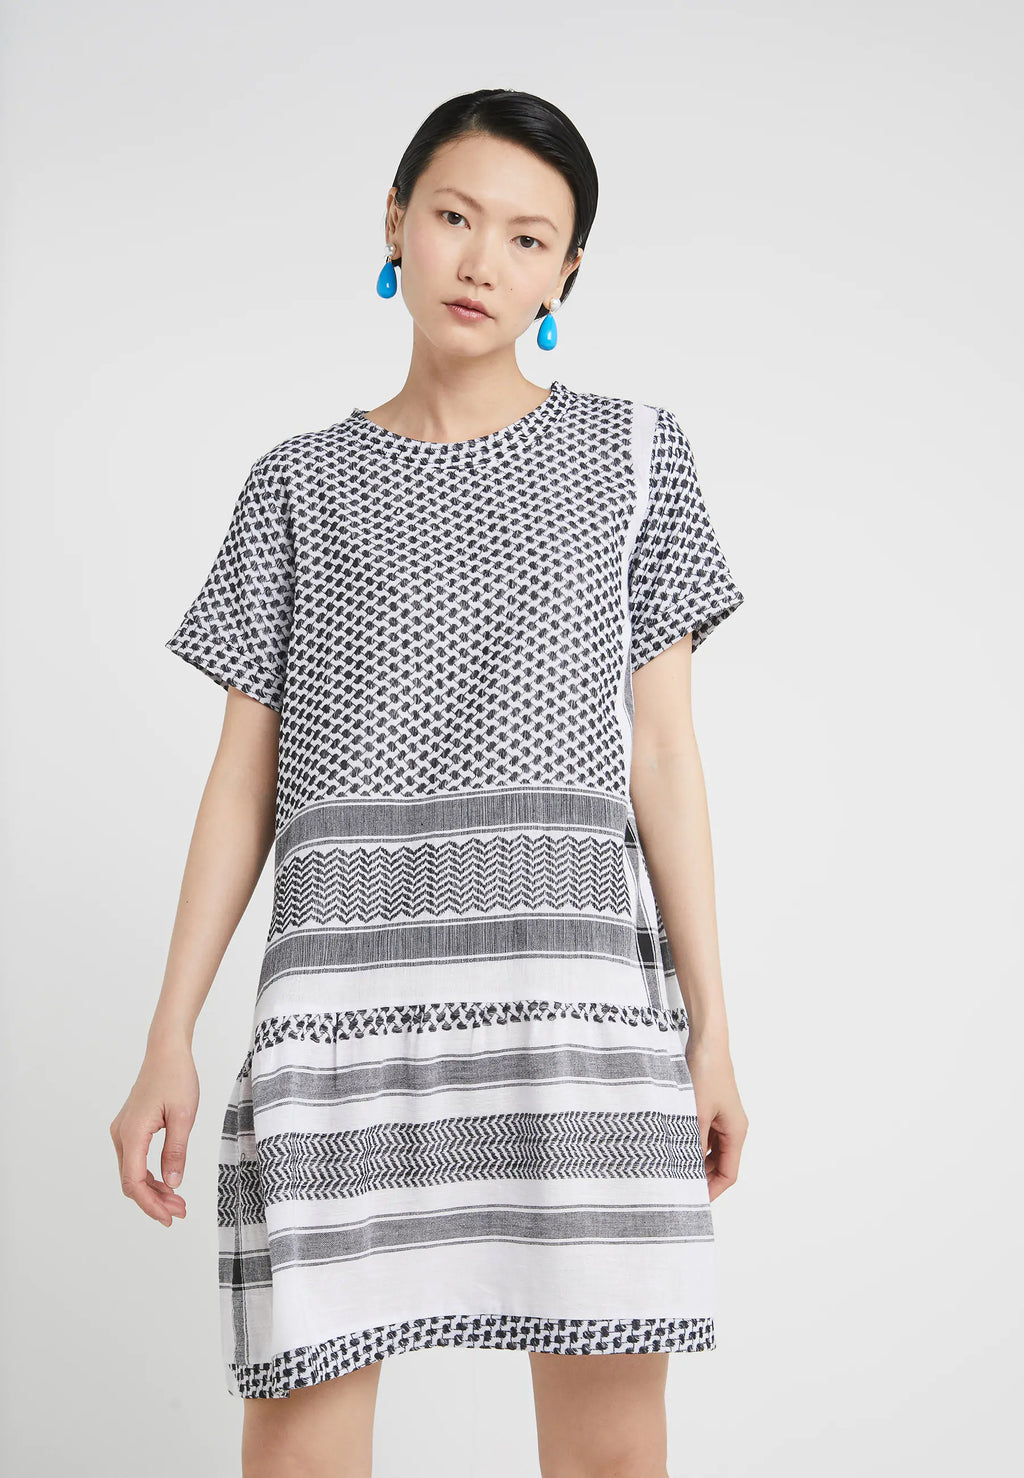 Buy Dress 2 O Short Sleeves from CECILIE COPENHAGEN at PAYA boutique